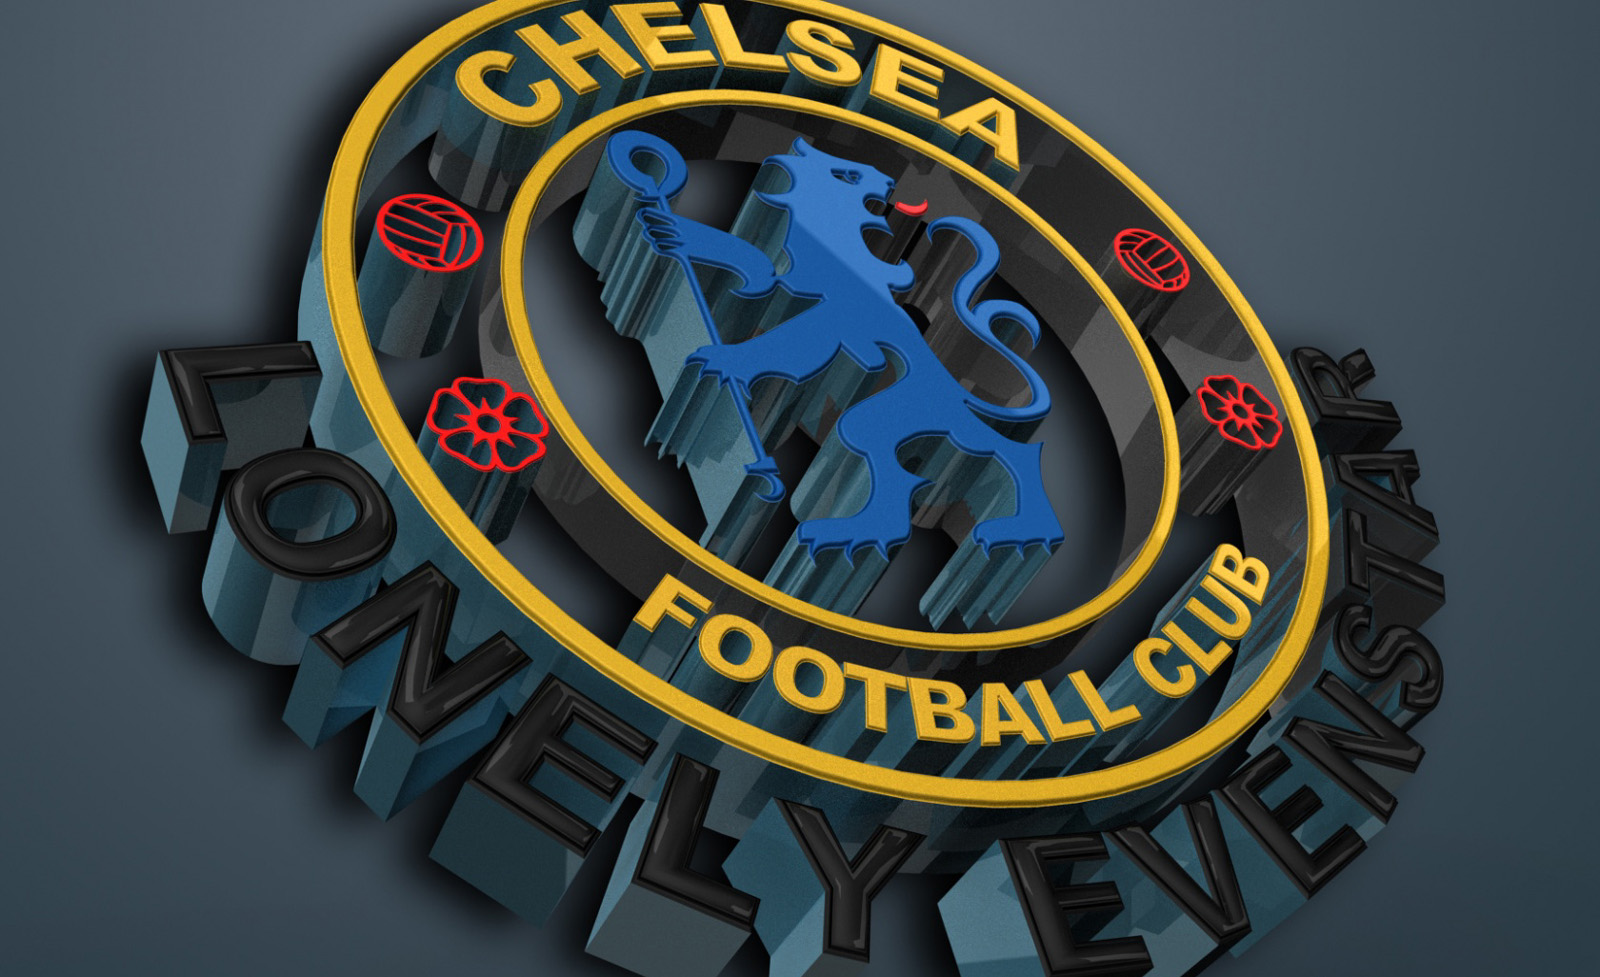 http://4.bp.blogspot.com/-Nlily6ryj5Y/UKKR2oOFCjI/AAAAAAAAIVc/yvh7bw2NM5g/s1600/Chelsea_Lonely_Evenstar_3D_Logo_Premier_League_England_Hd_Desktop_Wallpaper_citiesandteams.blogspot.com.jpg